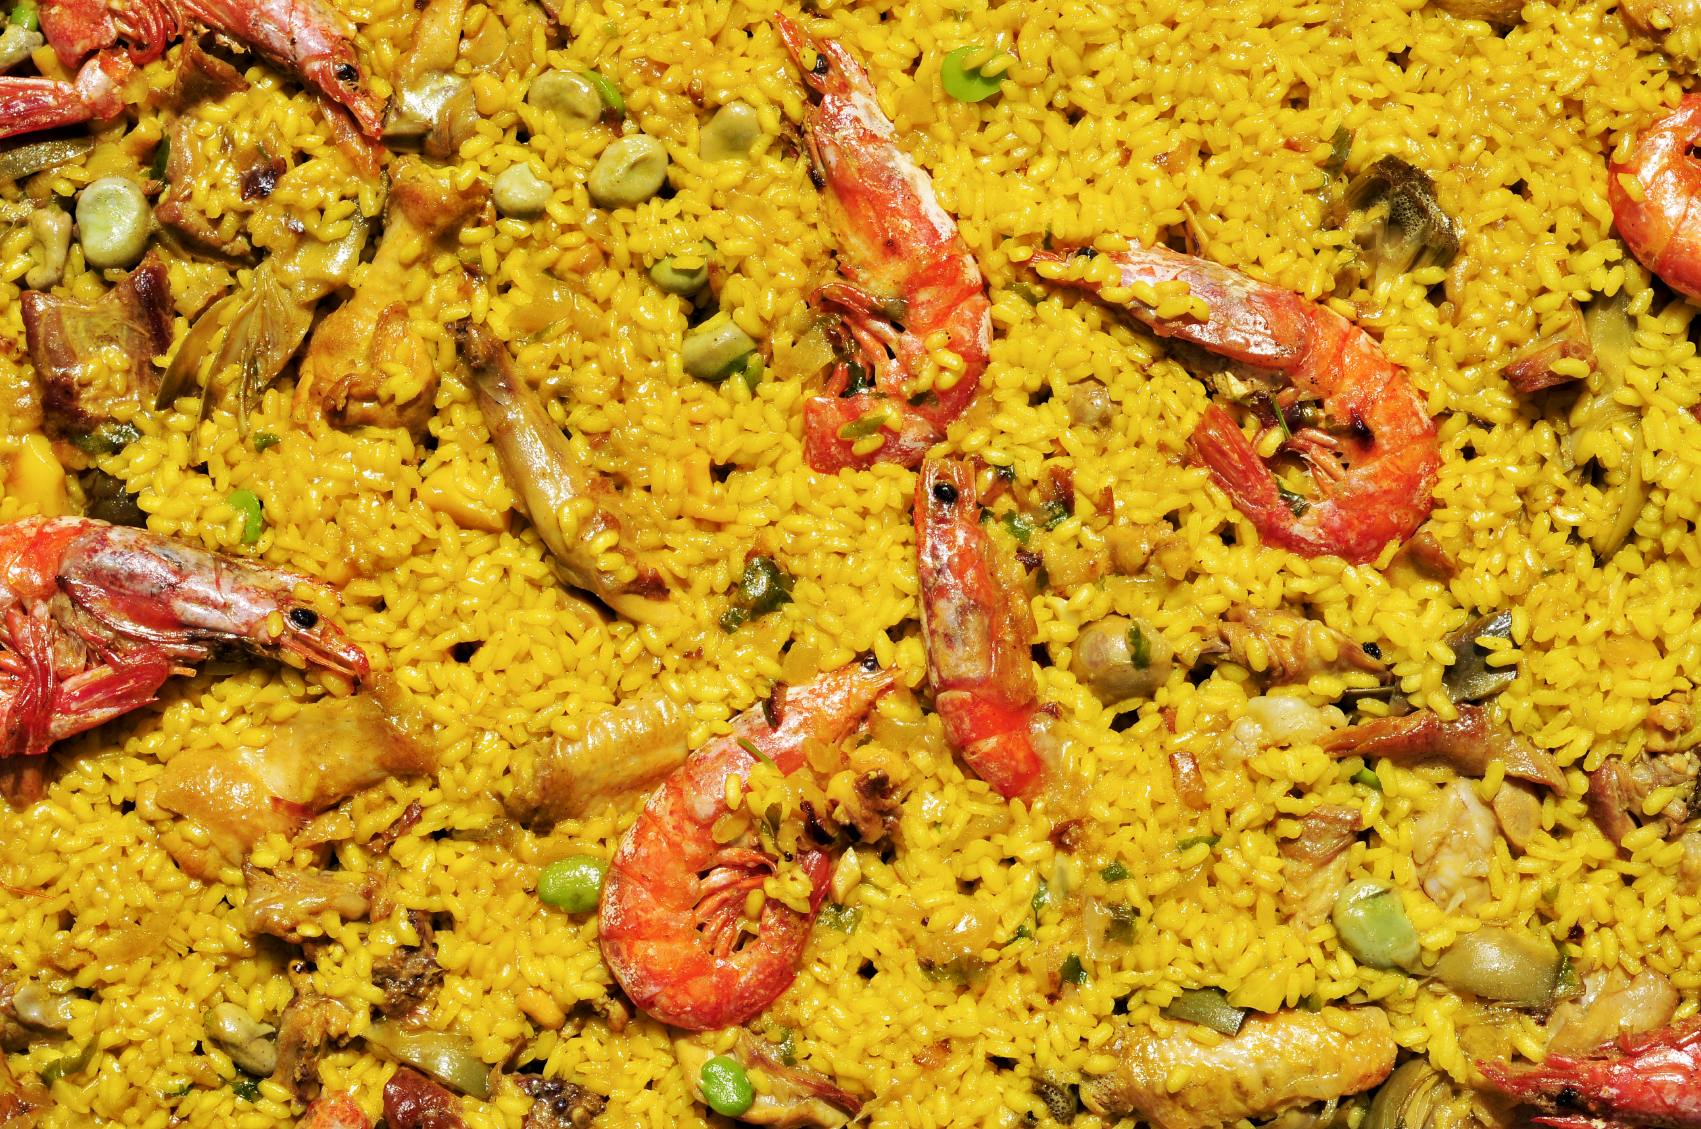 Spanish paella mix